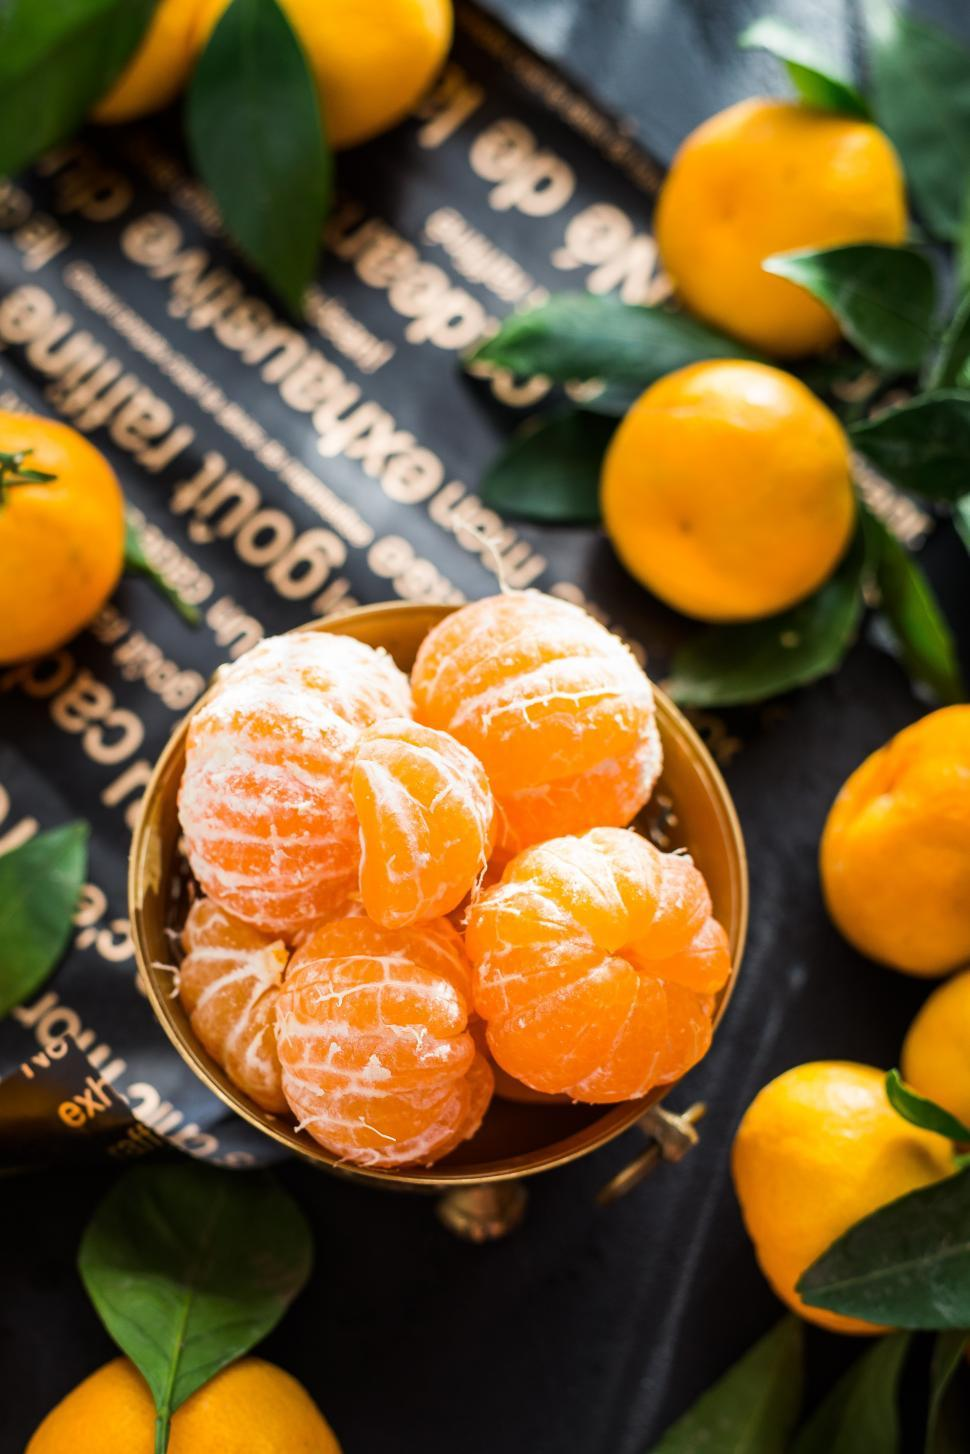 Download Free Stock Photo of overhead view of peeled mandarins in a brass fruit bowl